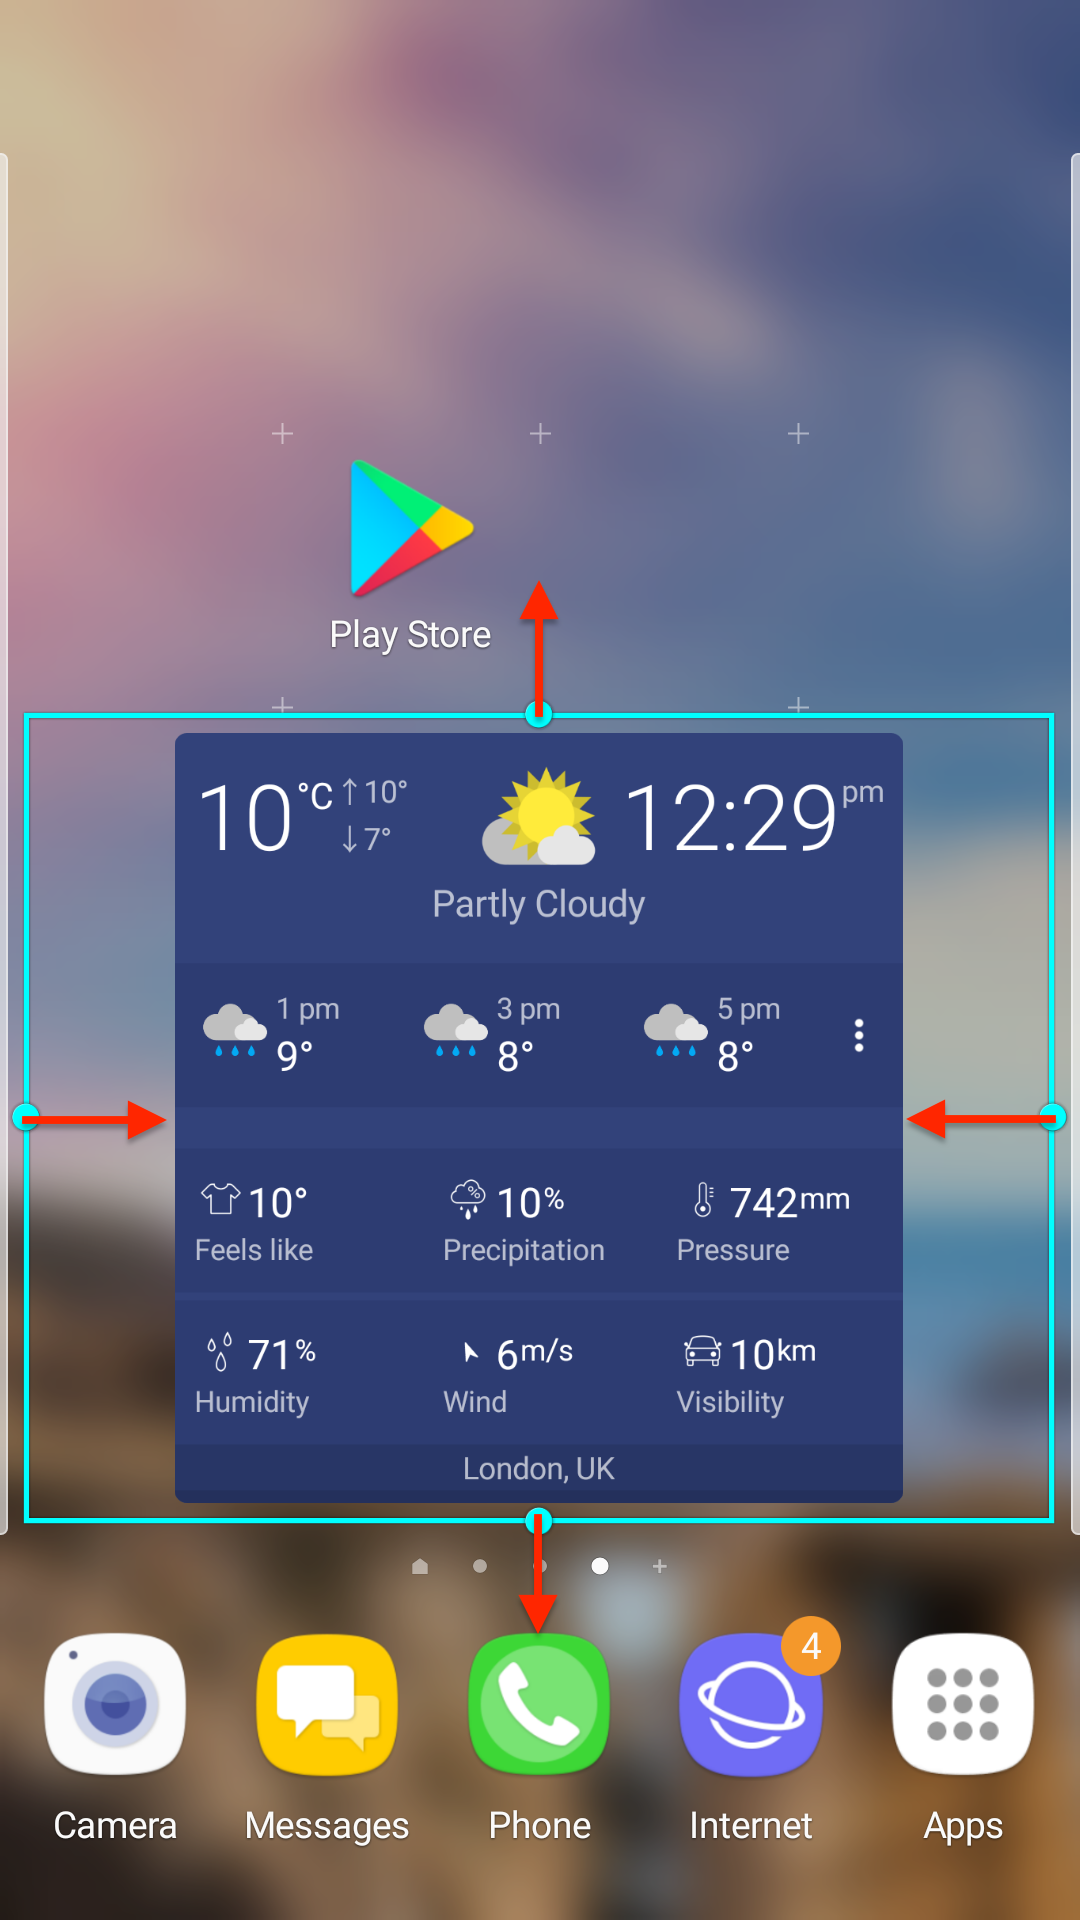 How To Resize Widget On Home Screen